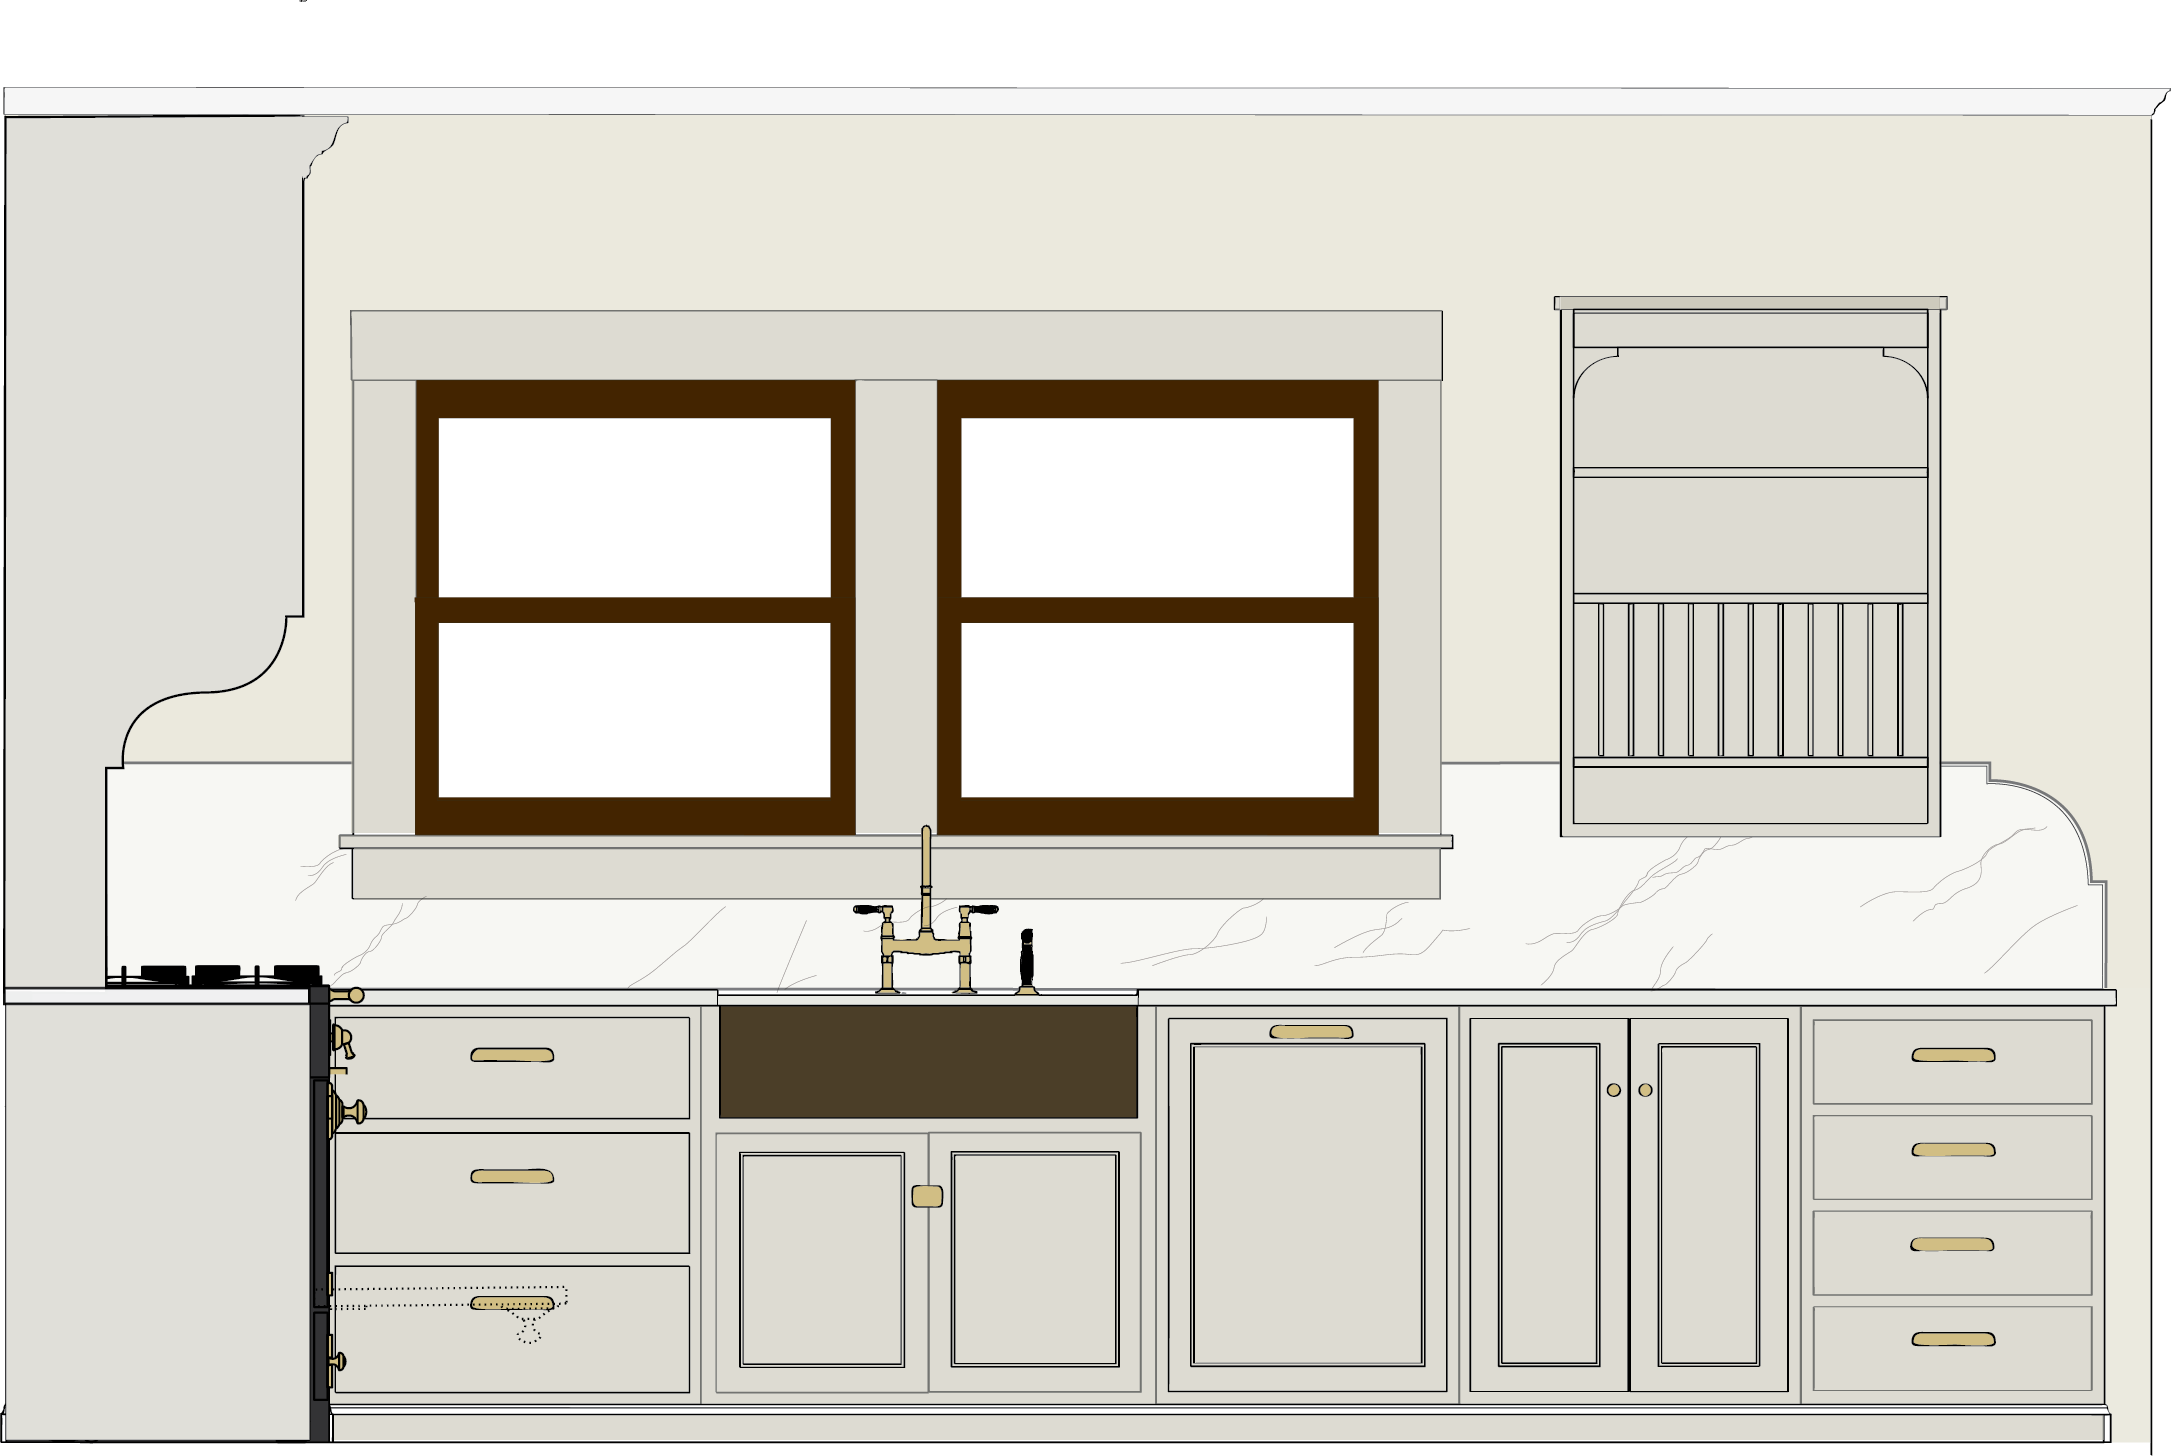 Elevation Drawing of Sink Wall